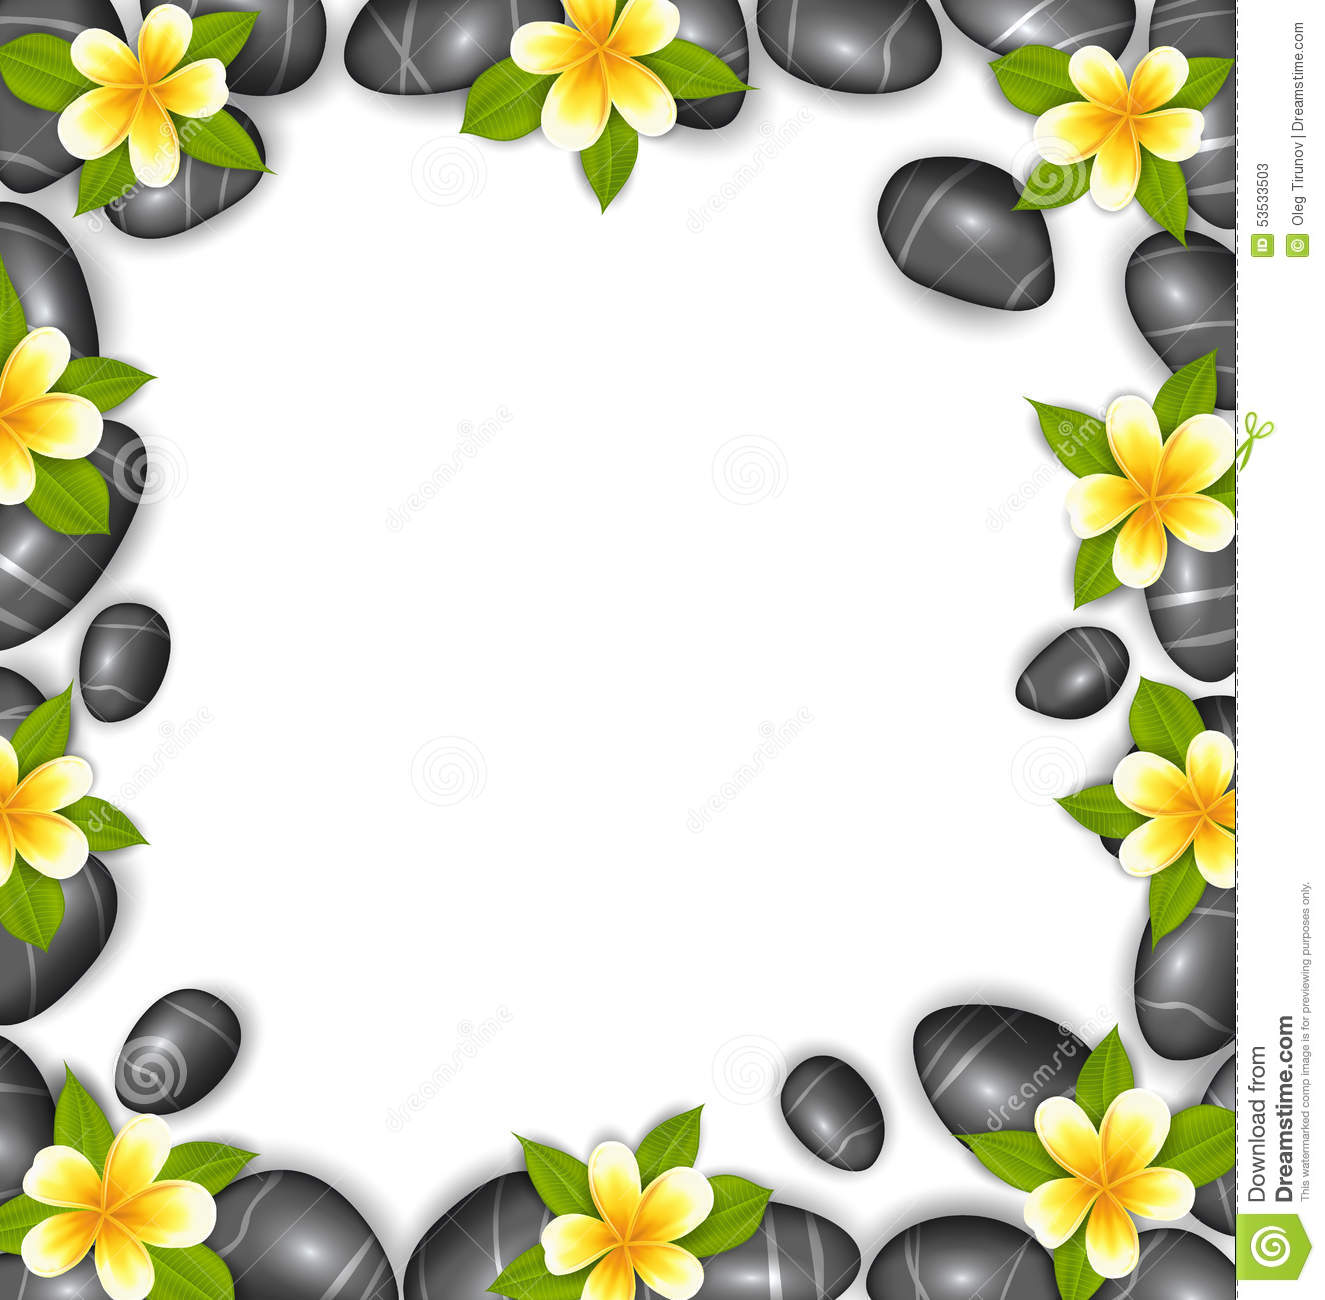 Border made in stones and tropical beautiful flowers stock vector border made in stones and tropical beautiful flowers thecheapjerseys Gallery